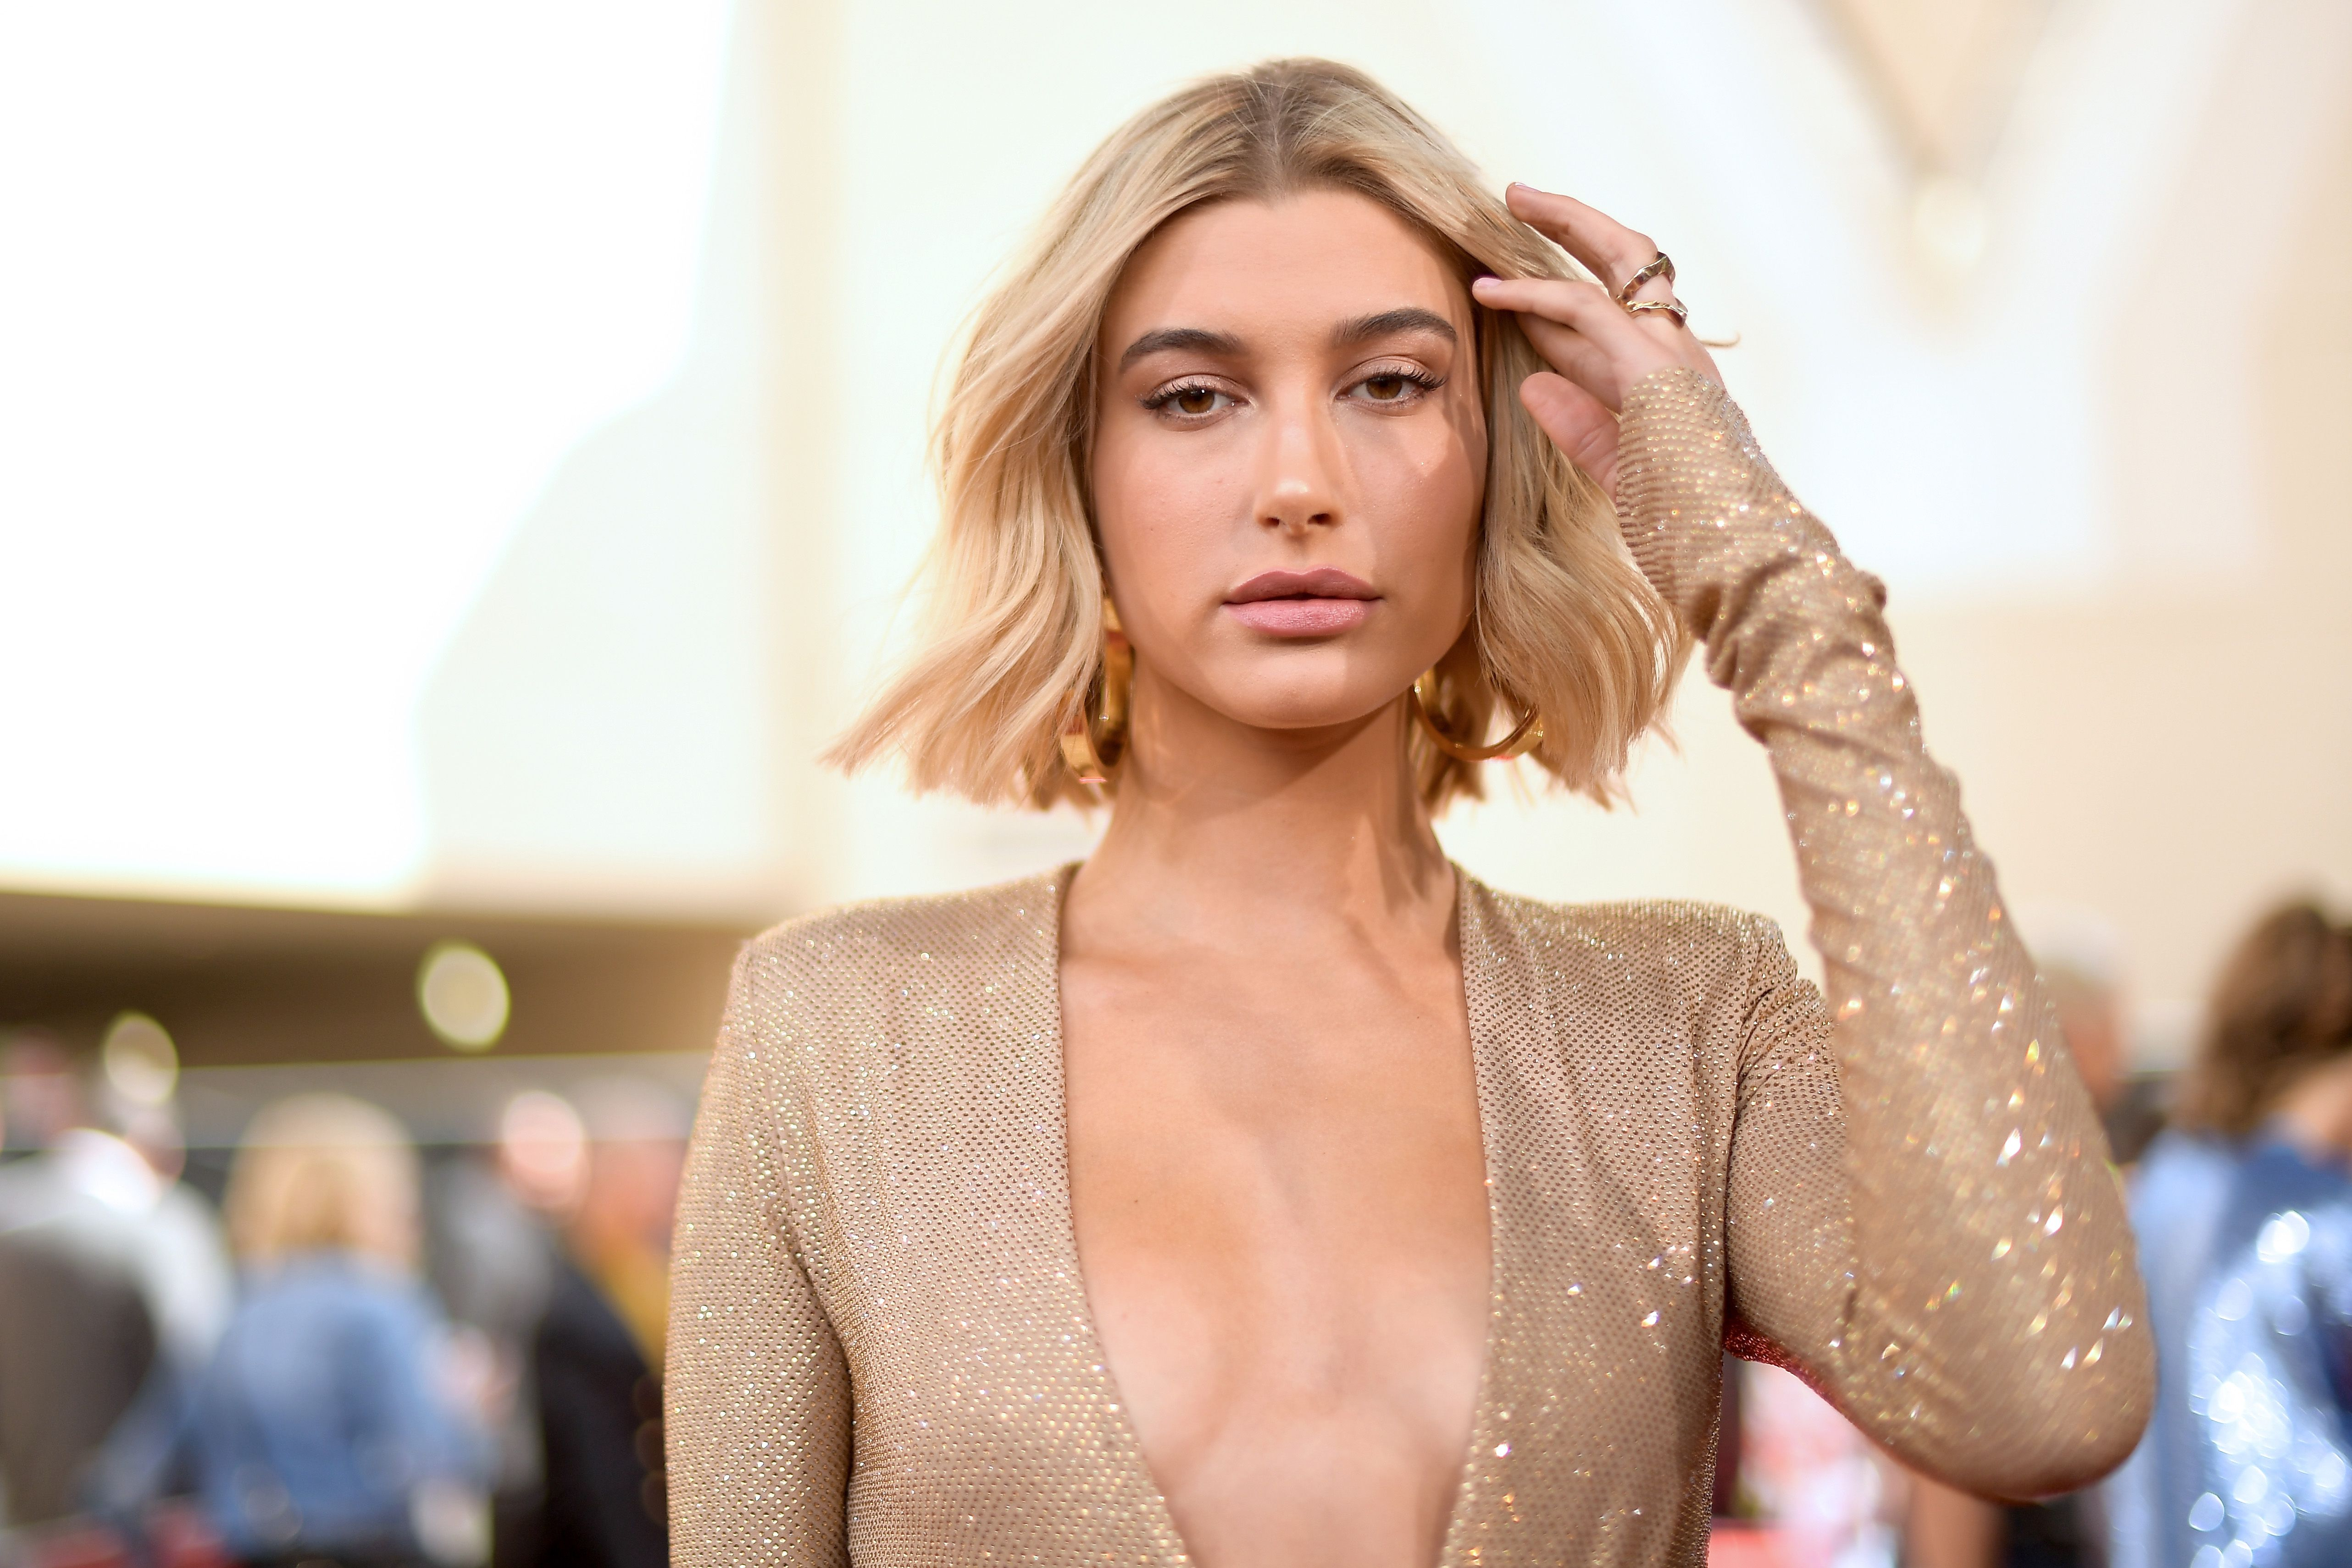 Hailey Baldwin S In A Twitter Feud With Taylor Swift Fans After Justin Bieber Mocks Banana Video